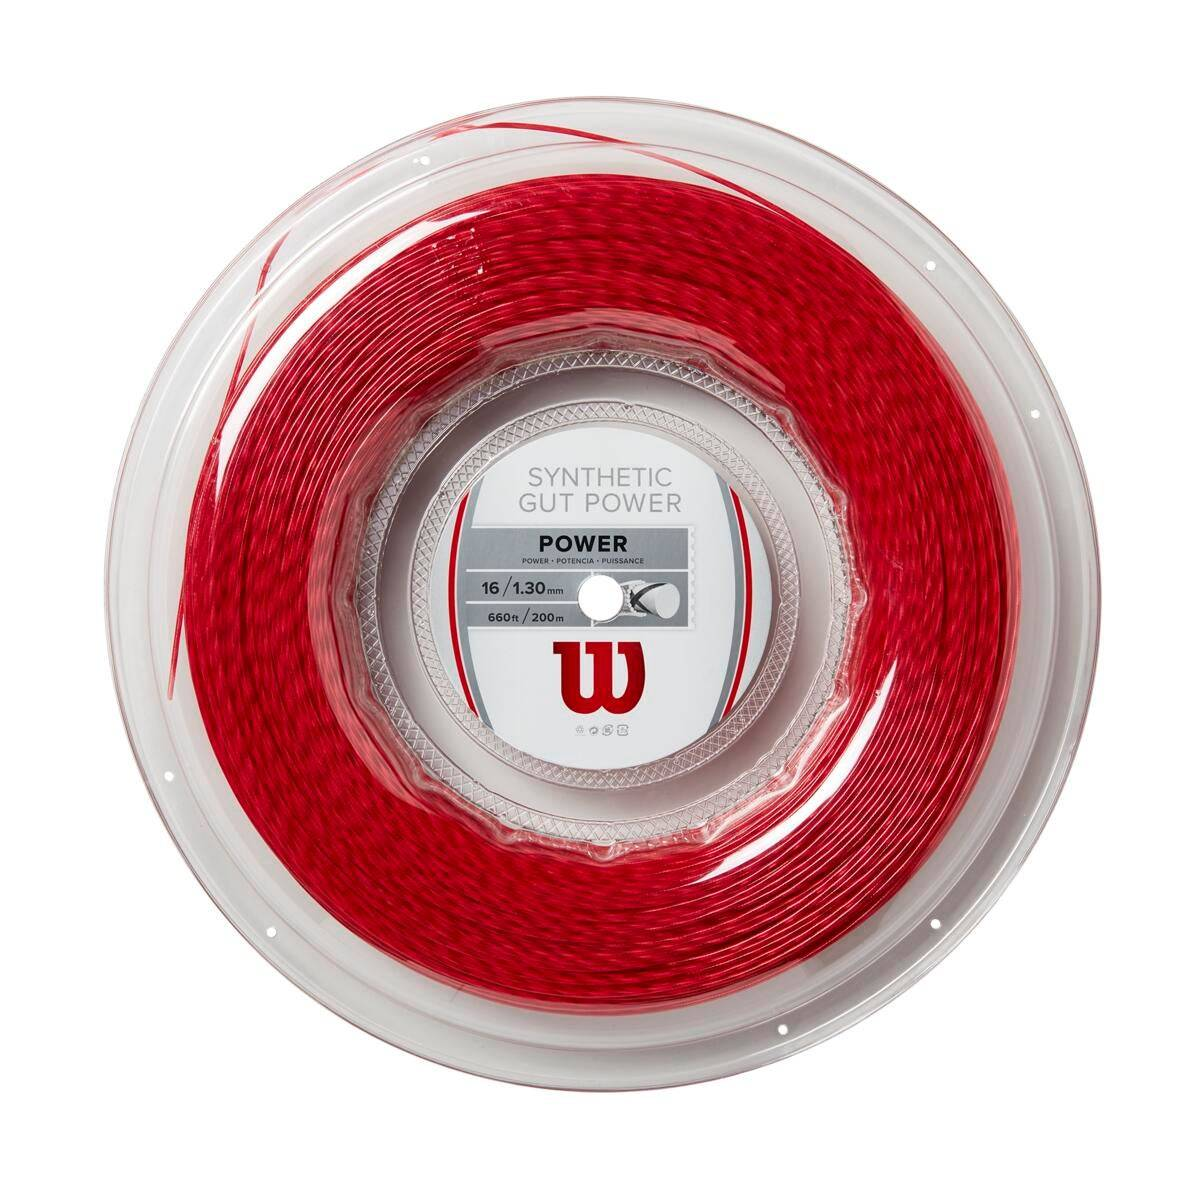 Wilson Synthetic Gut Power Tennis String - Reel in Red, 16 GA (1.30MM)  - Unisex - Red